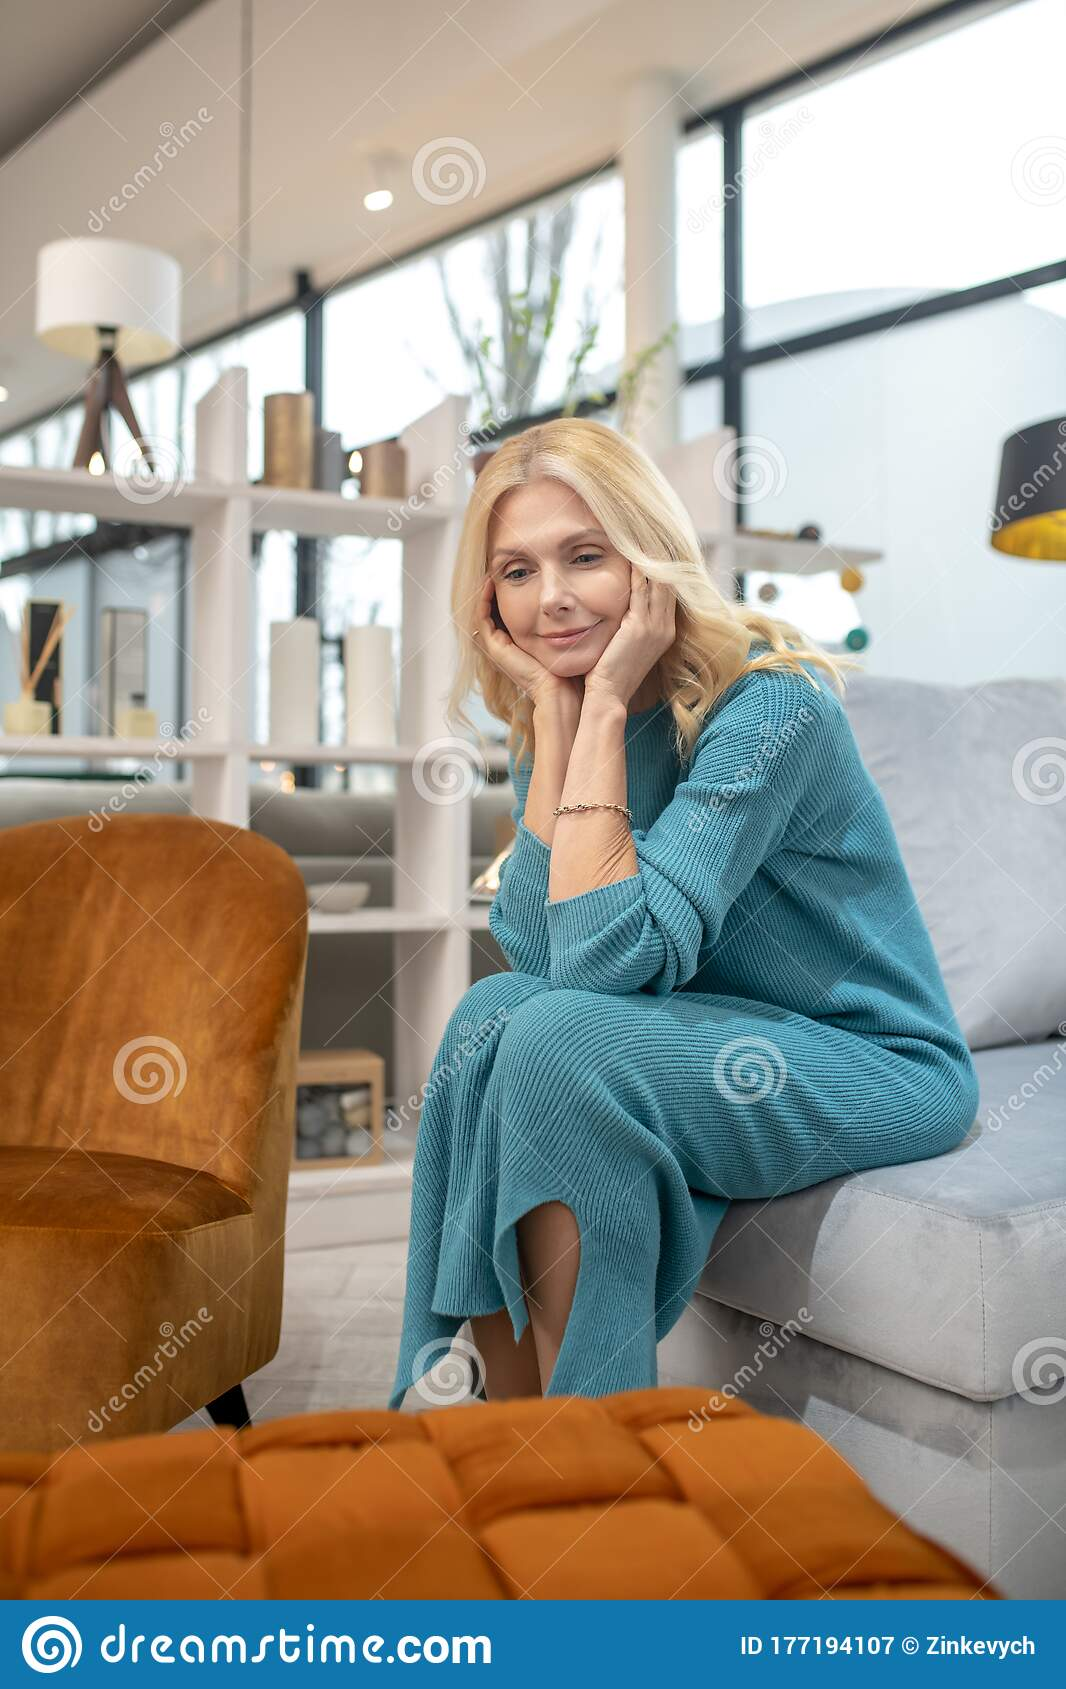 Blonde Woman In A Blue Dress Sitting On A Sofa Stock Image Image Of Female Store 177194107